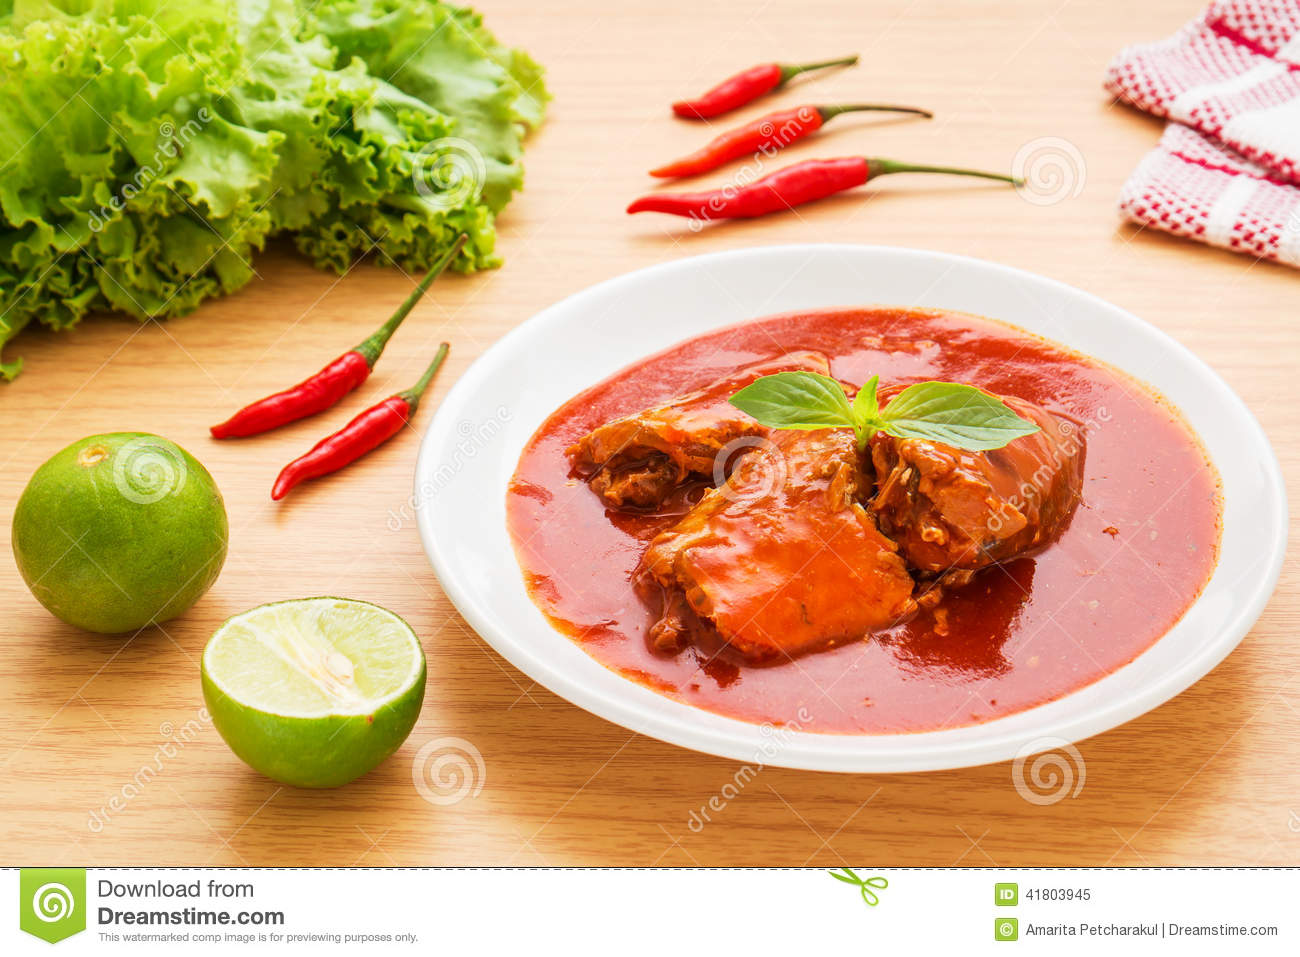 Canned fish in tomato sauce on plate stock photo image for Fish in tomato sauce